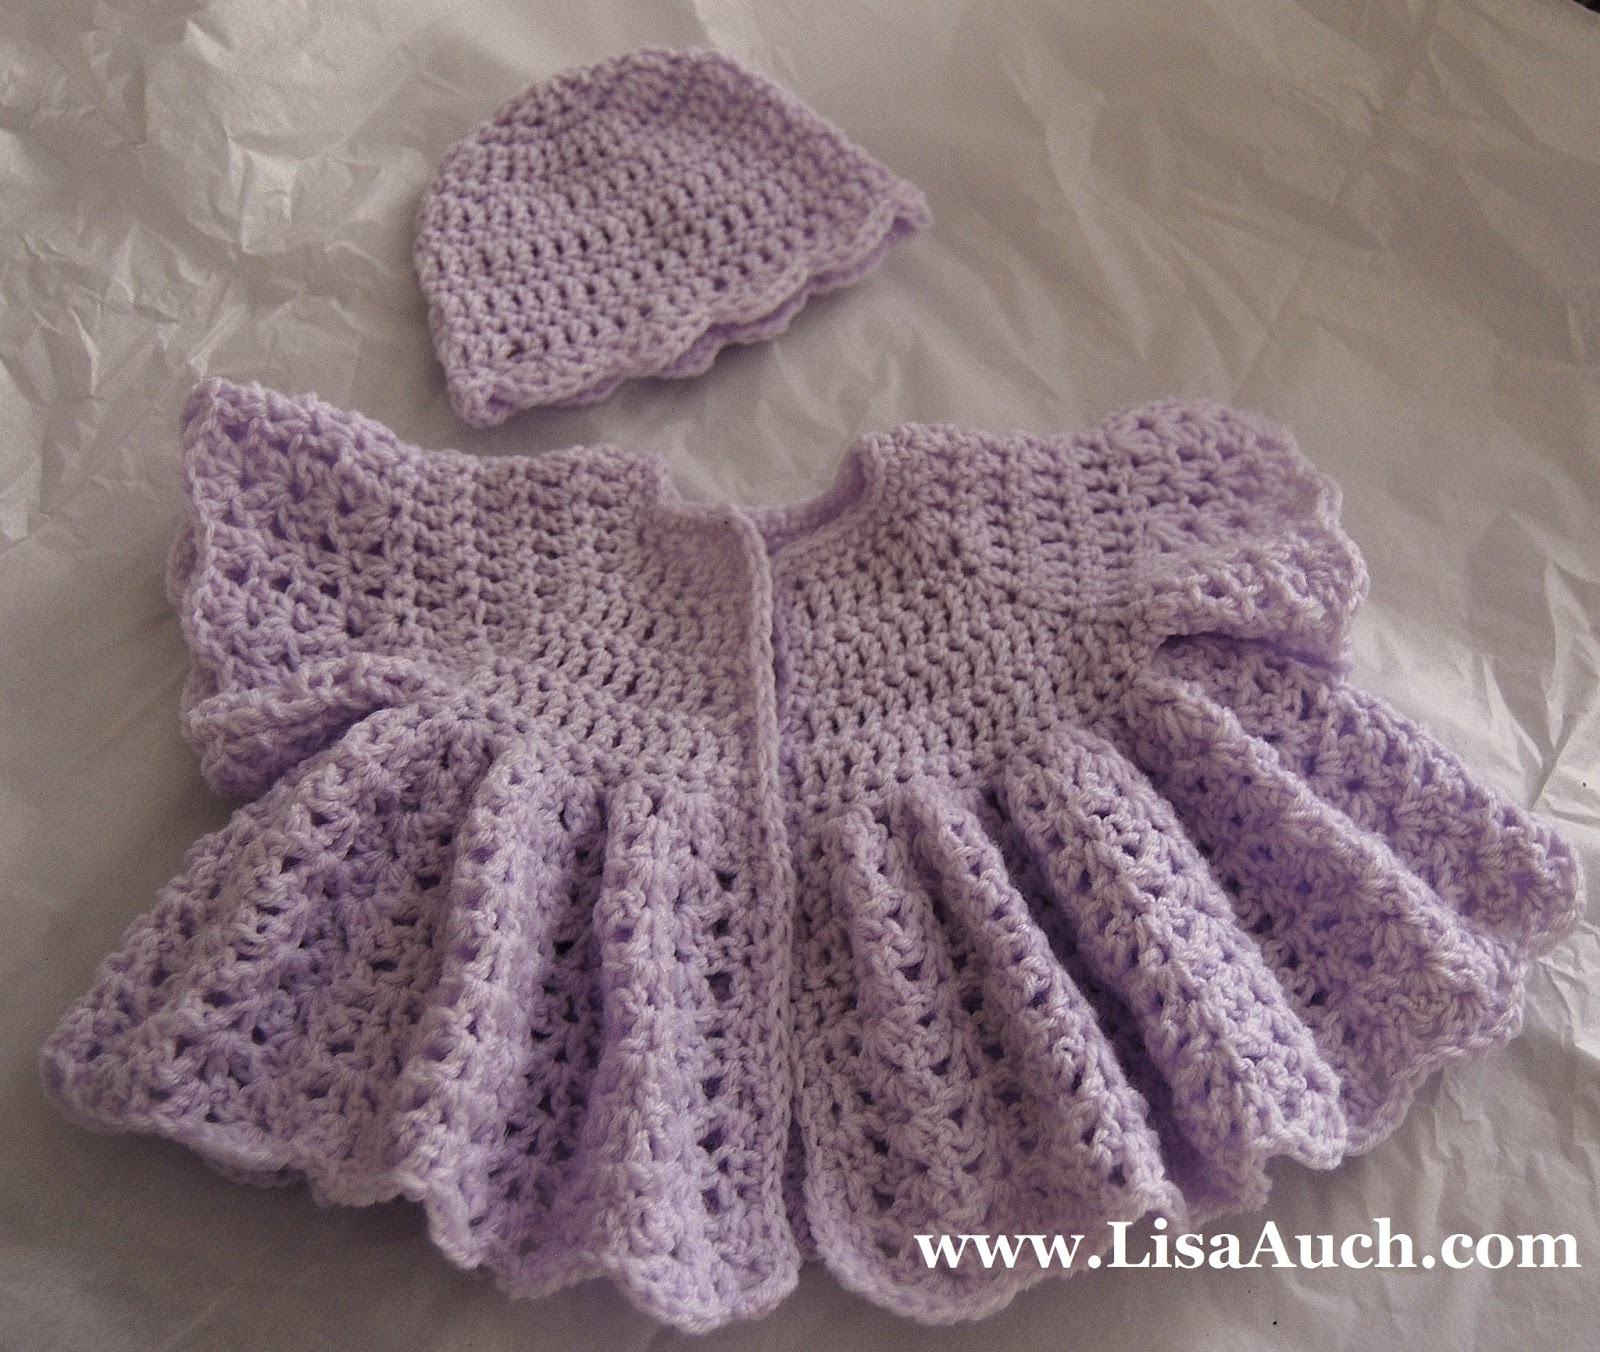 Crochet Pattern Central Baby Cardigans : Crochet Cardigan Pattern Child - Long Sweater Jacket